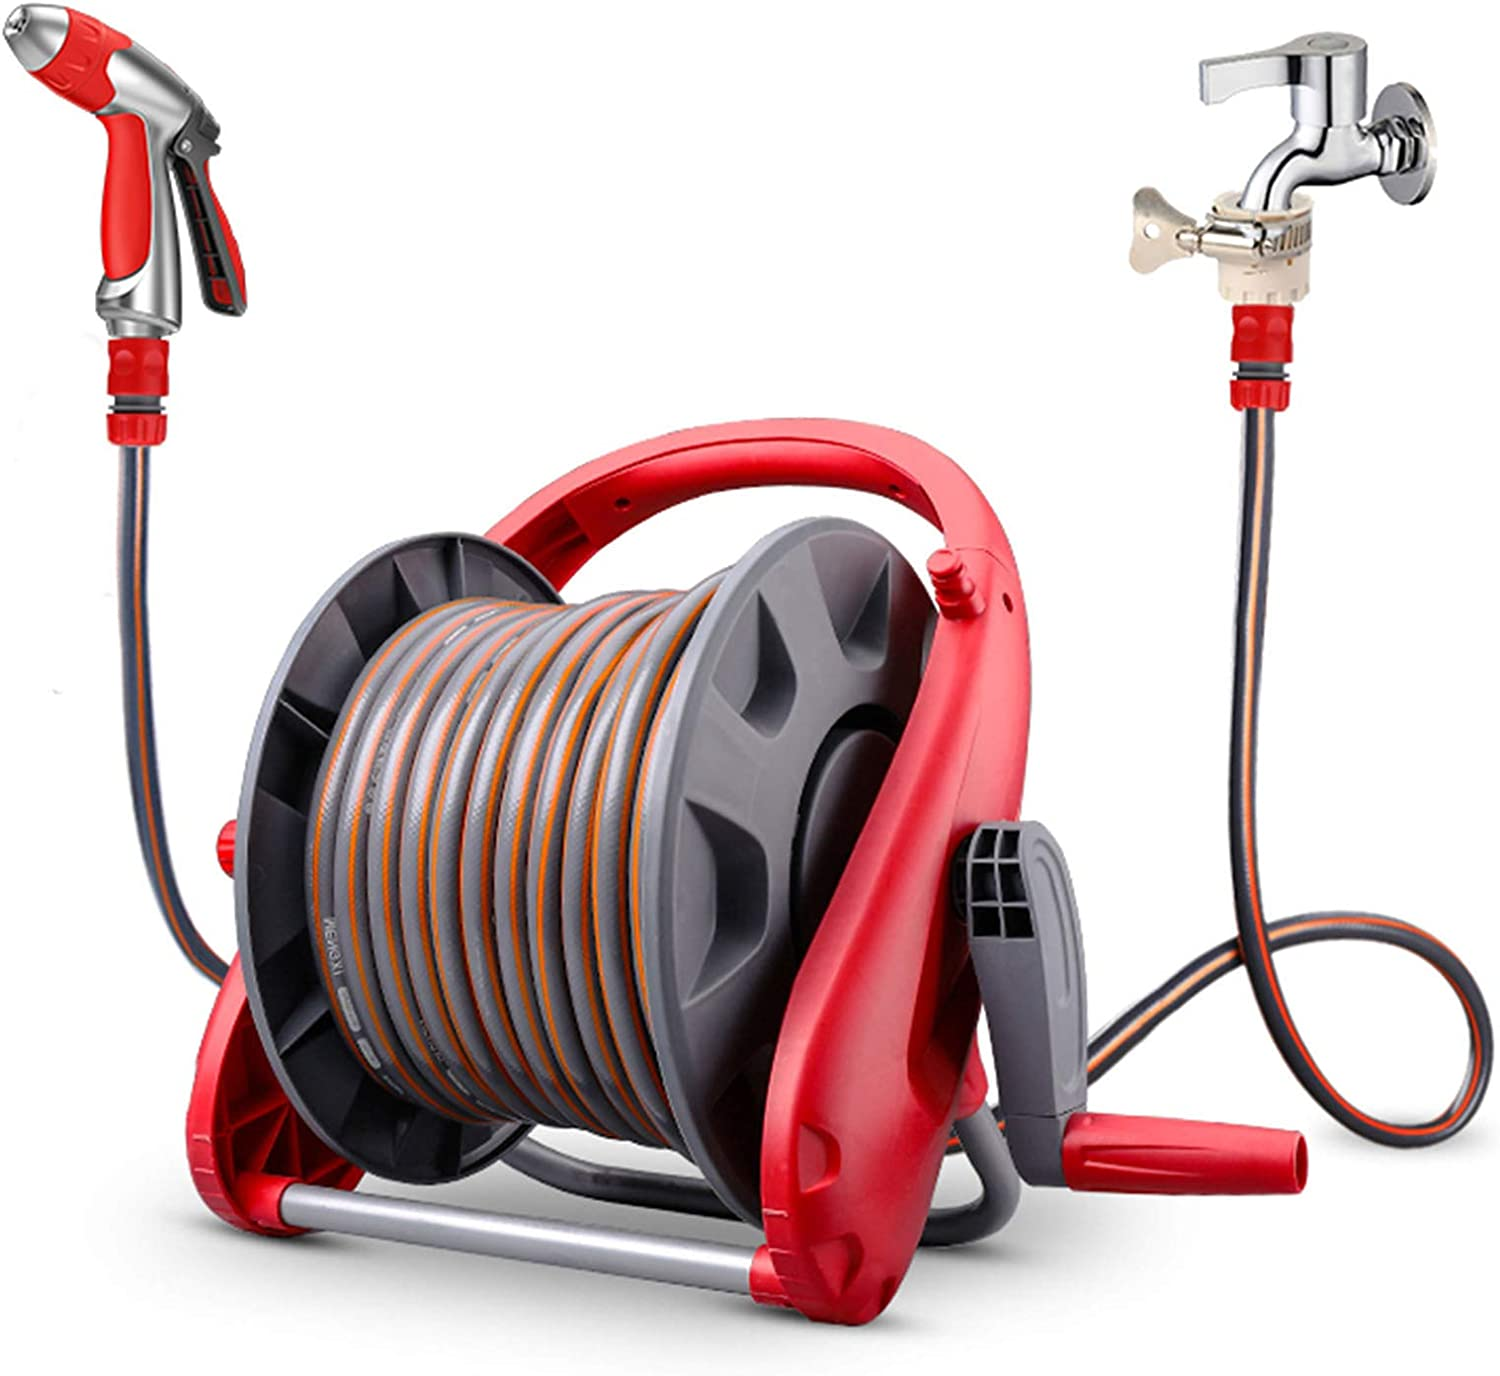 Portable Wall-Mounted Garden Hose Reel c Watering New York Mall and Household cheap